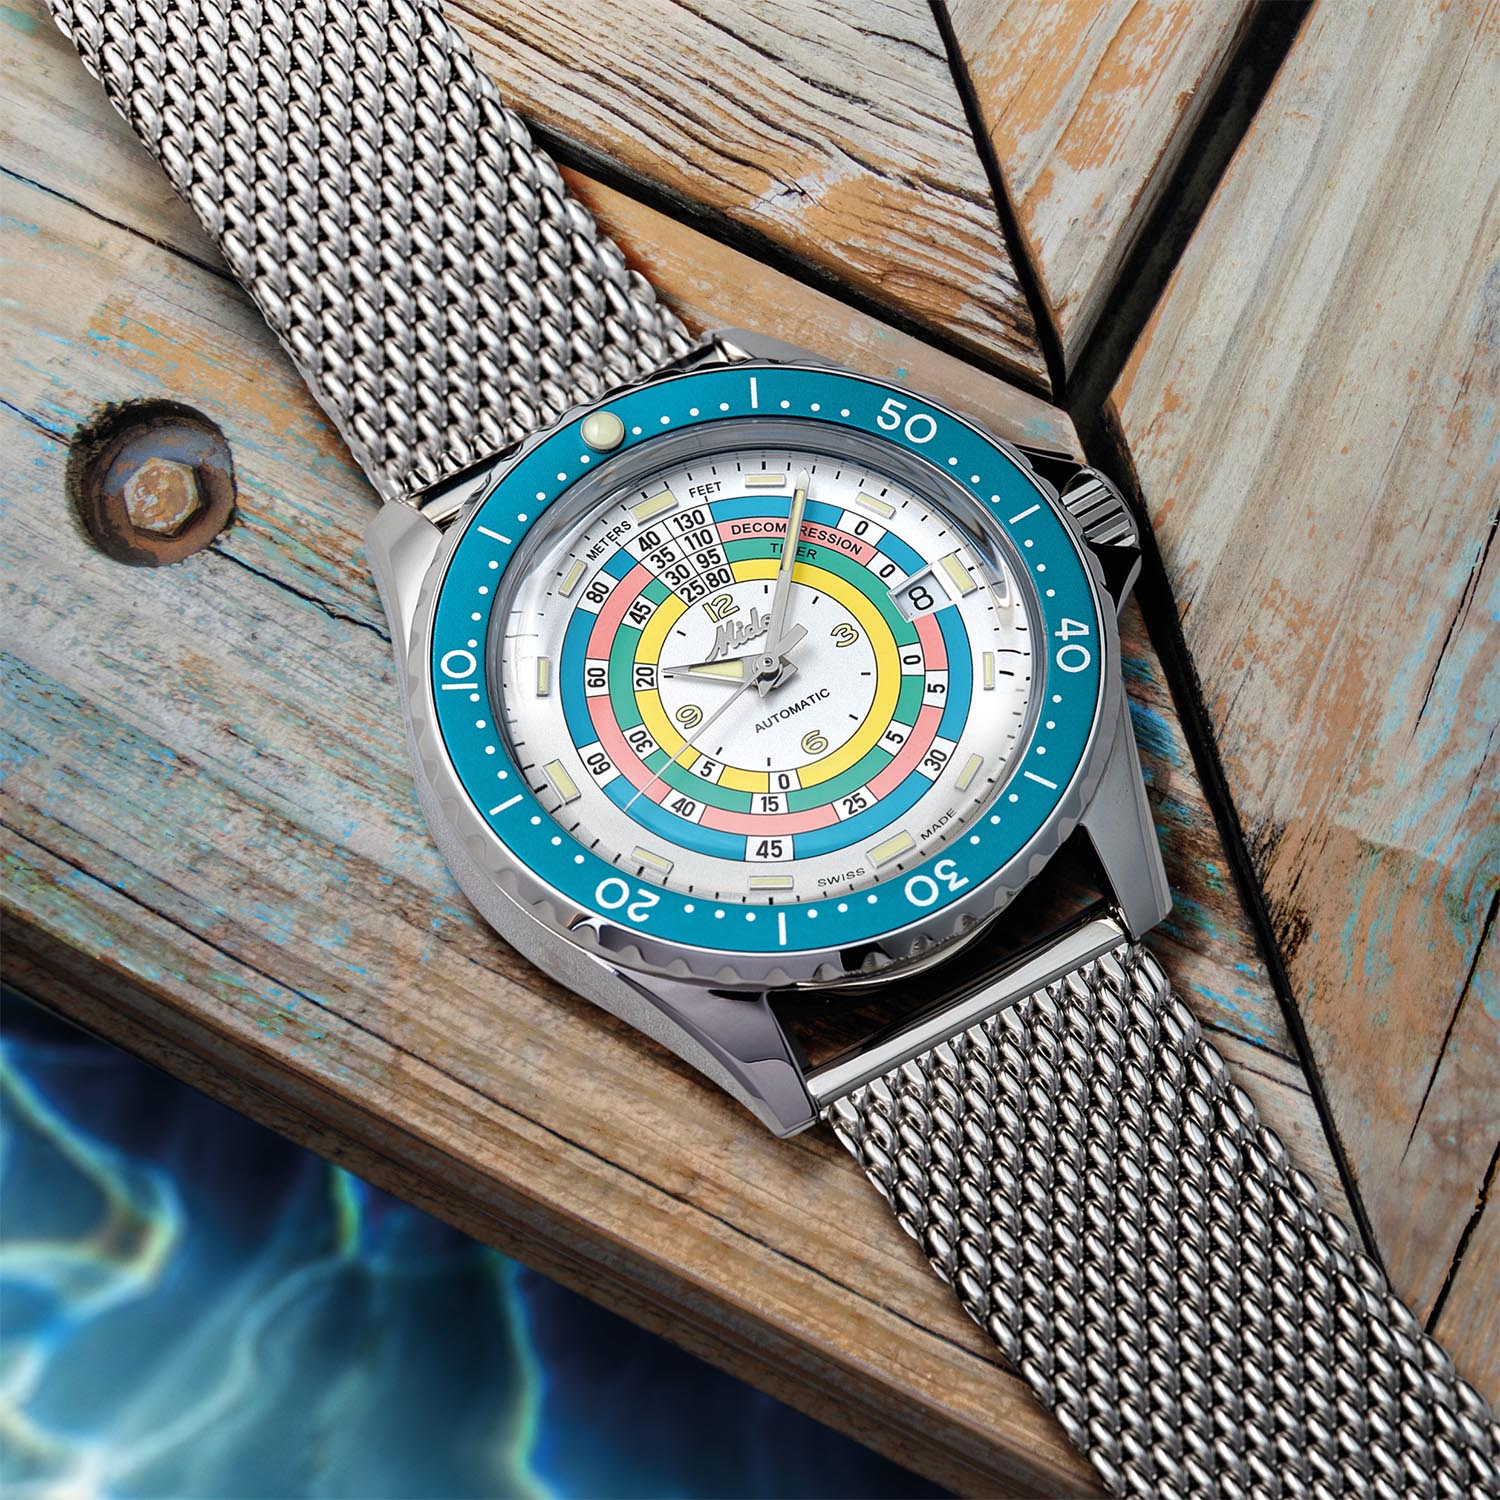 Mido Ocean Star Decompression Timer 1961 Limited Edition Lifestyle